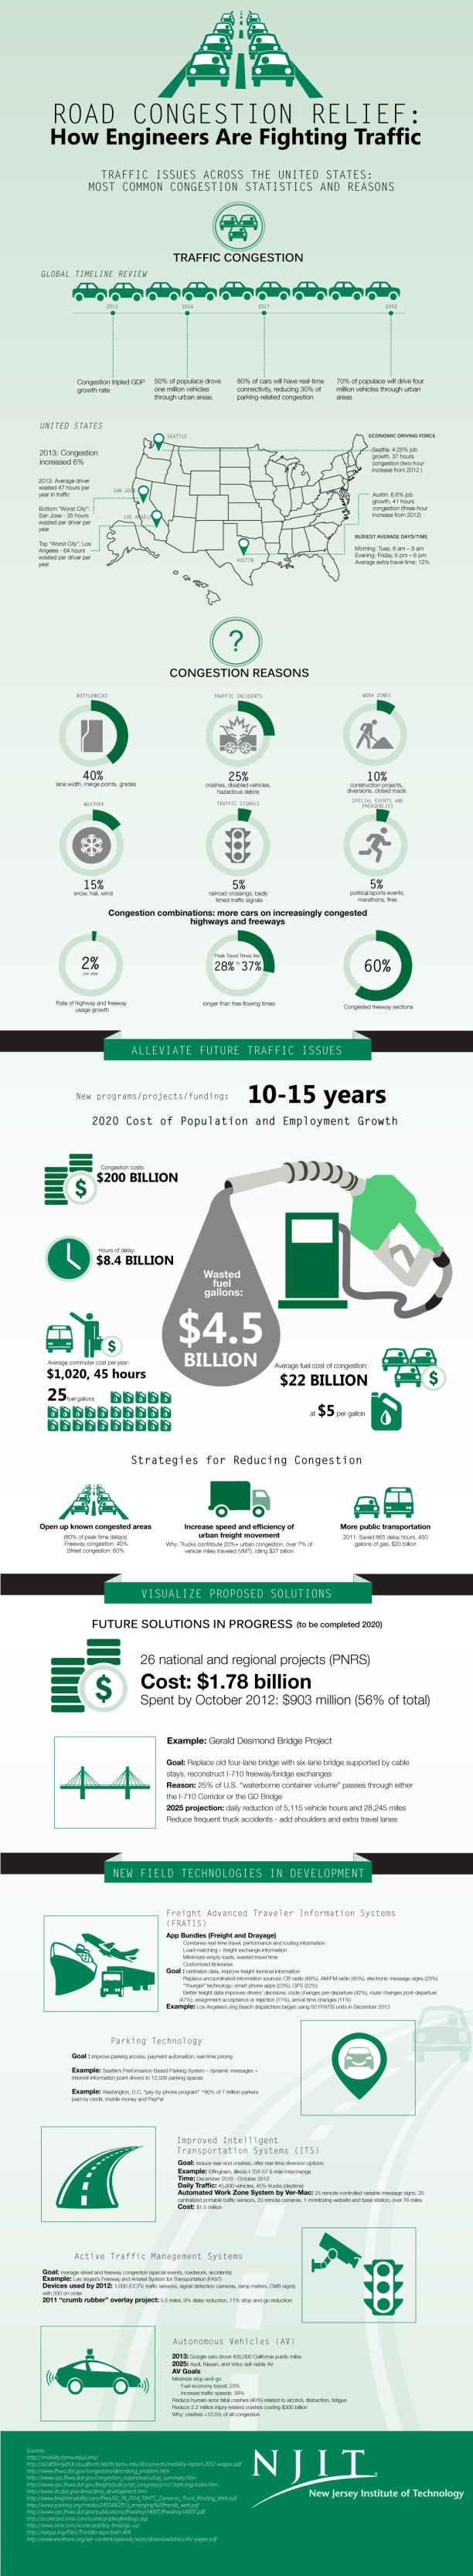 Road-Congestion-Relief-Infographic_final